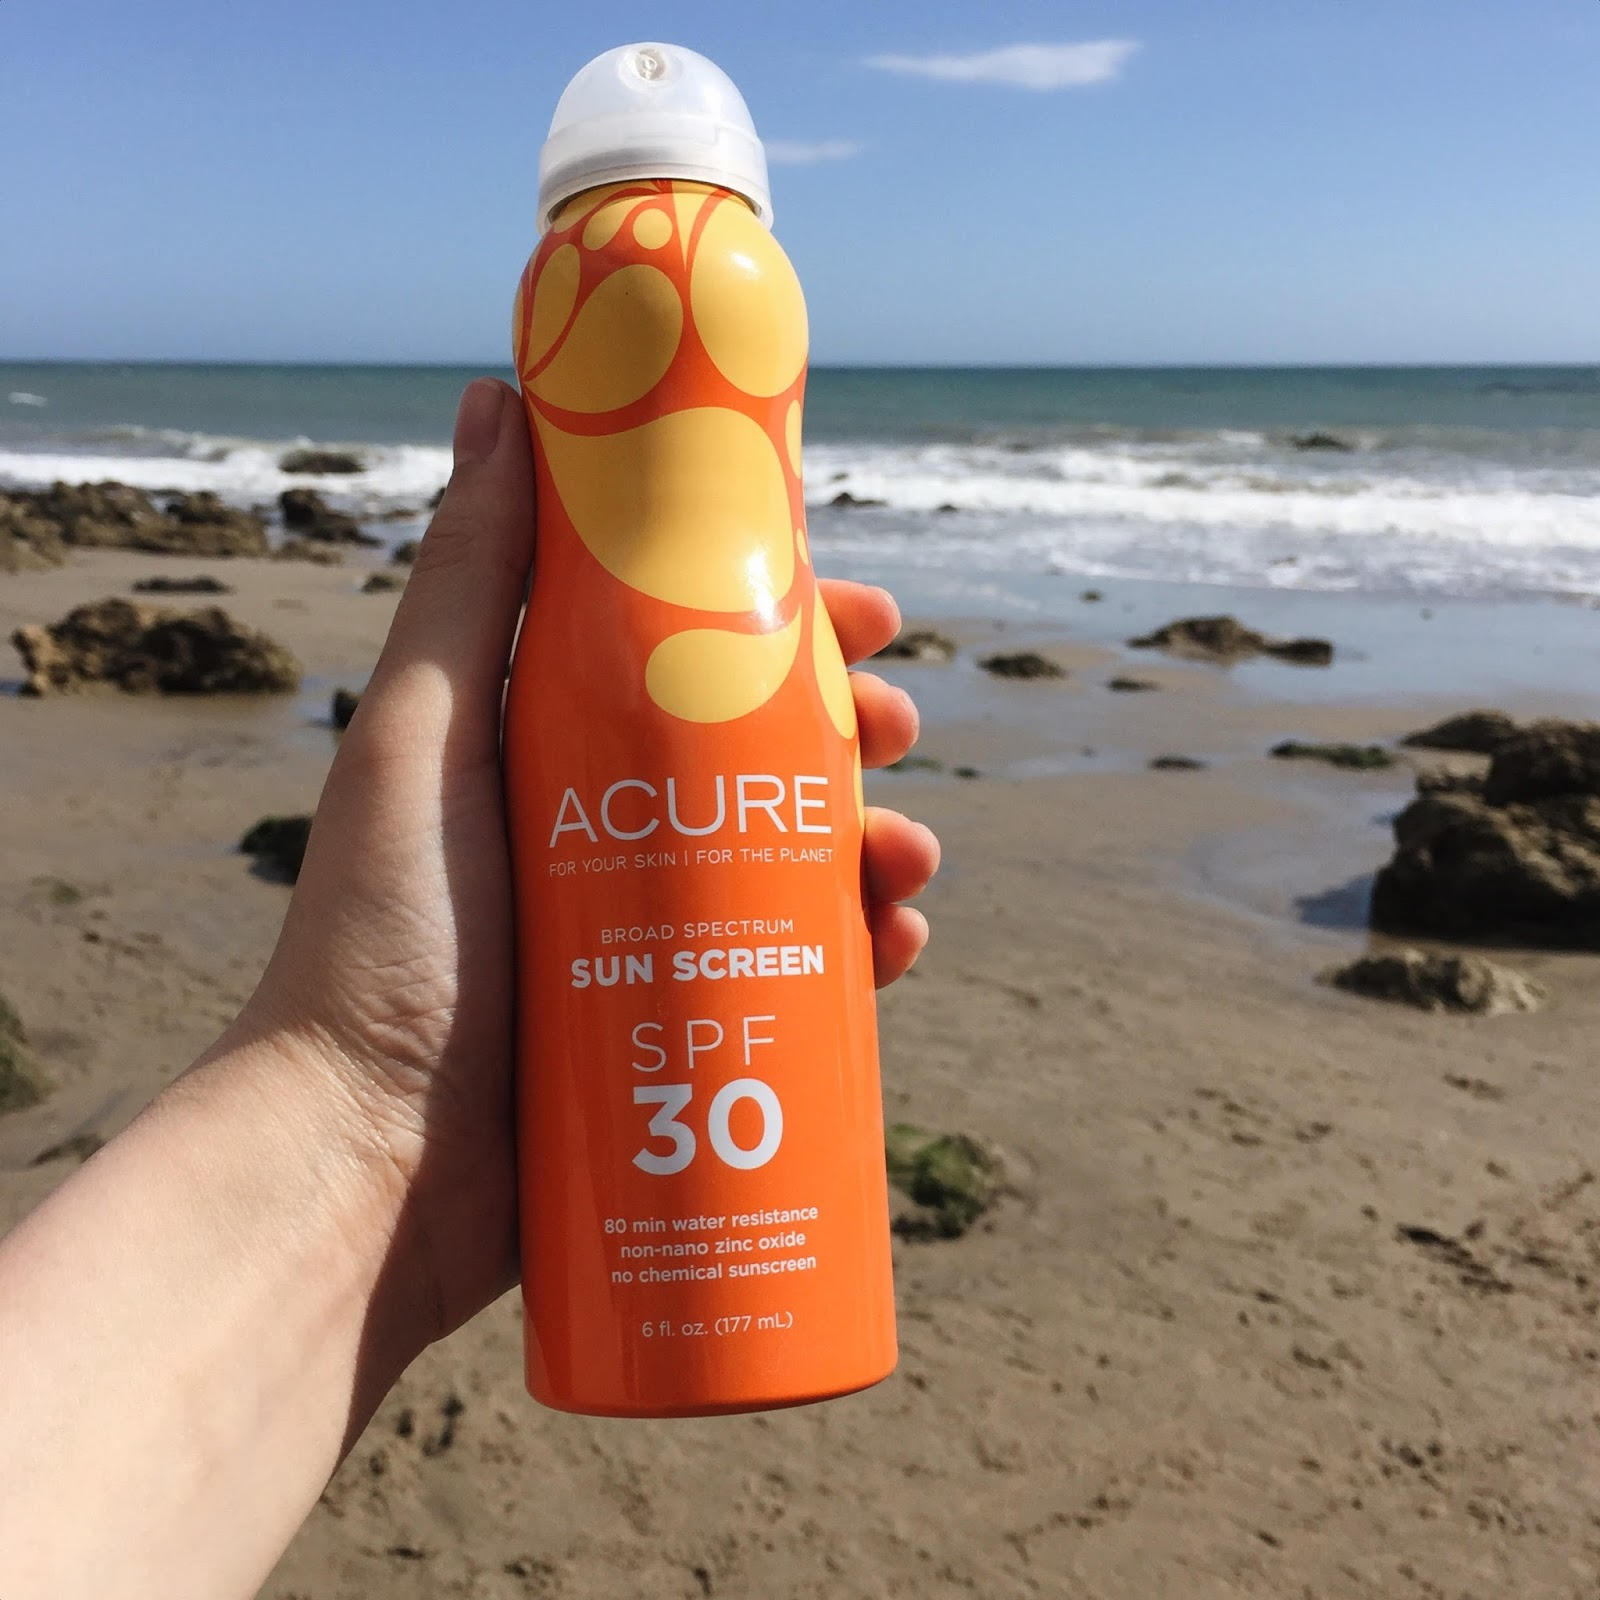 Acure Broad Spectrum SPF 30 Continuous Spray Sunscreen Review natural skincare brand hellolindasau